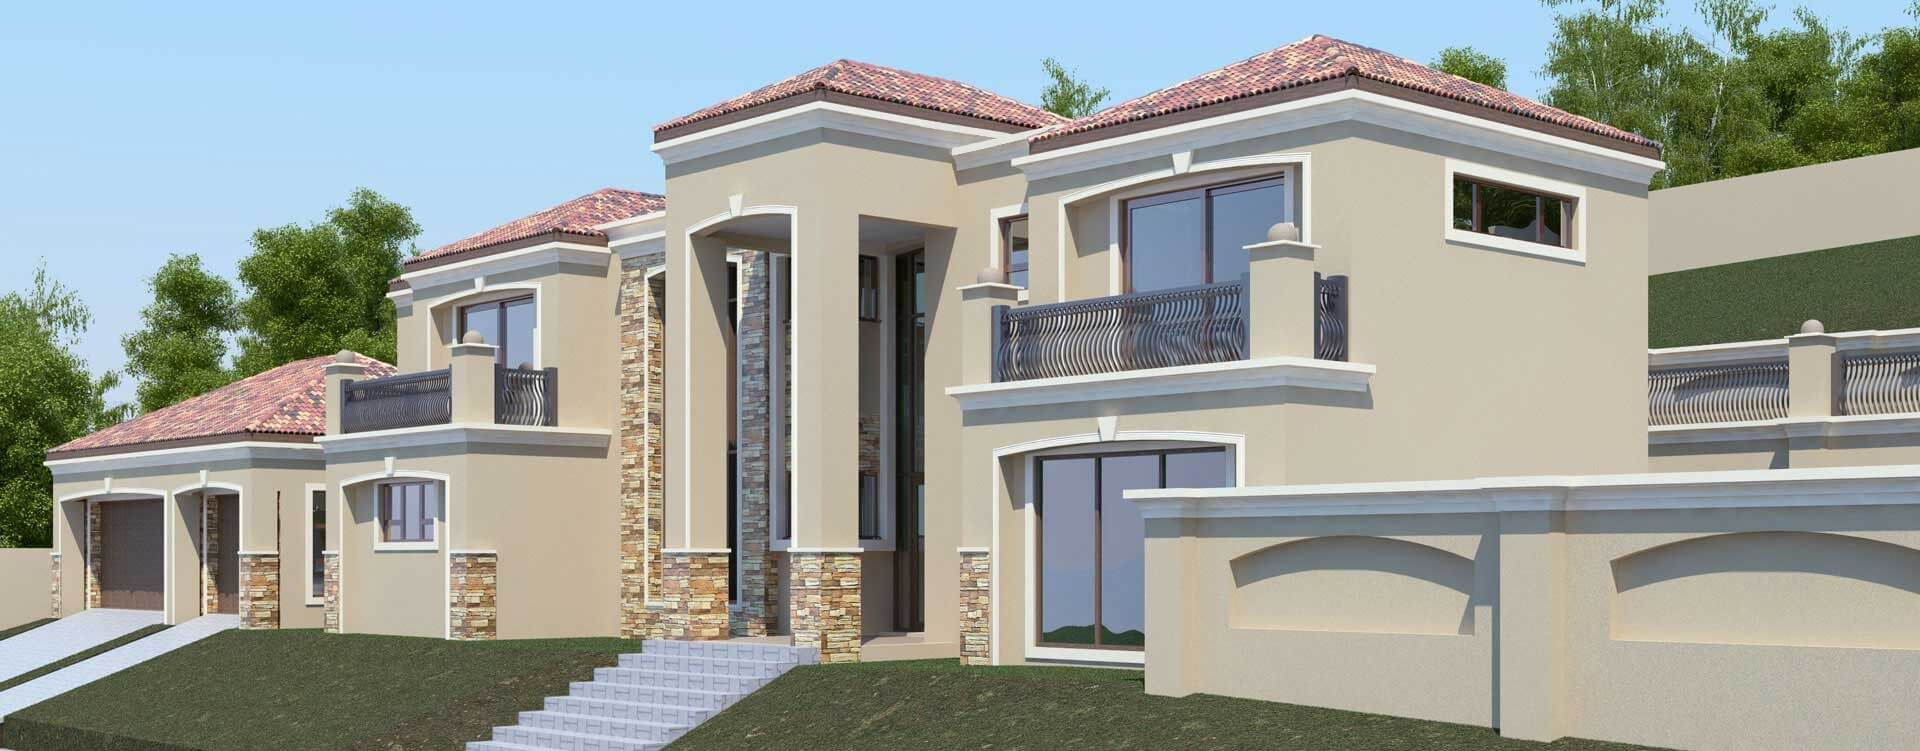 Nethouseplans affordable house plans for Tuscan house plans